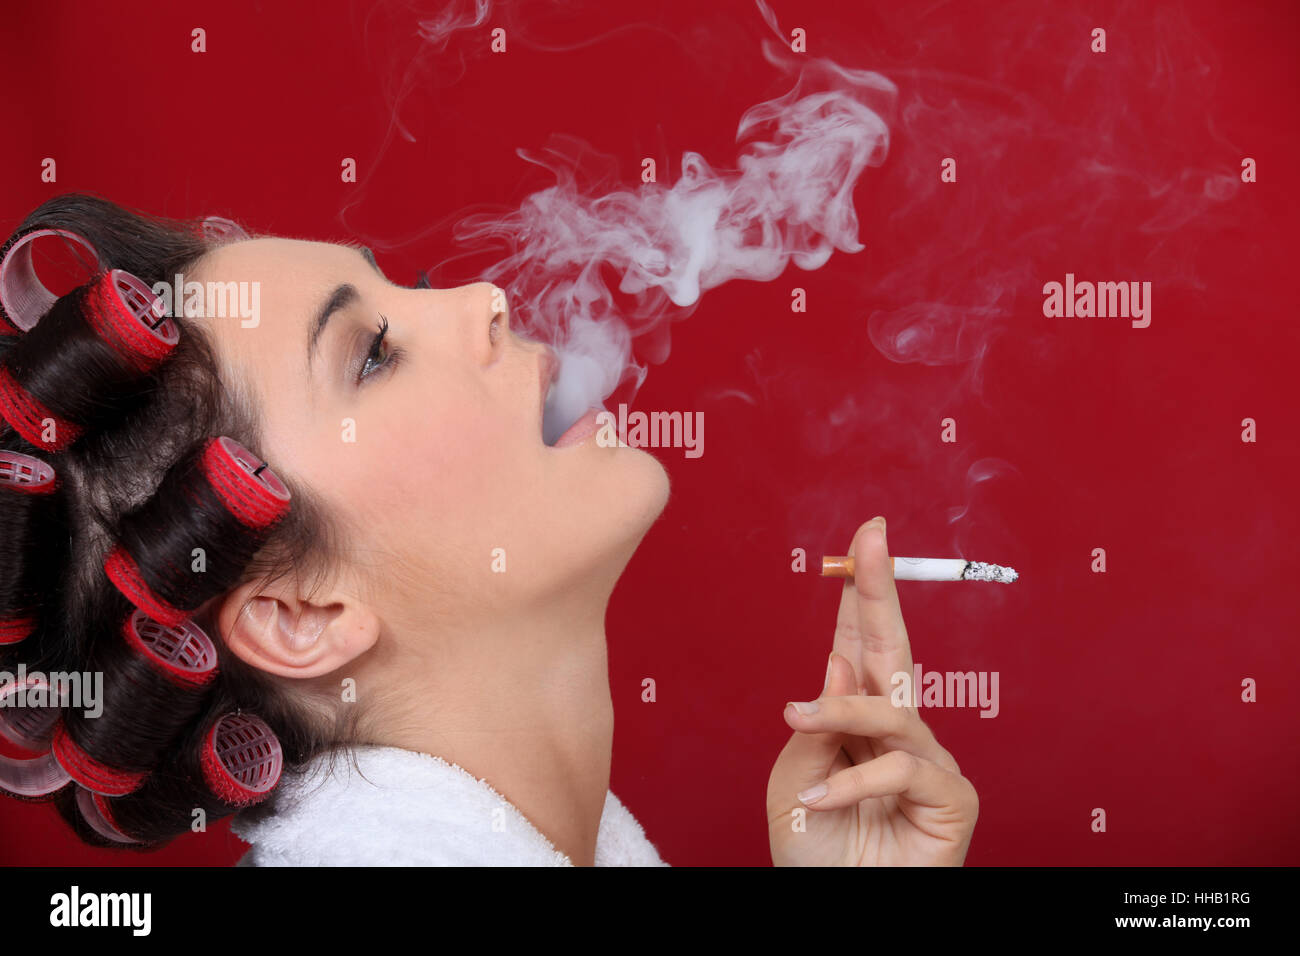 Woman Cigarette Profile Hand Isolated Female Mouth Sassy Stock Photo Alamy